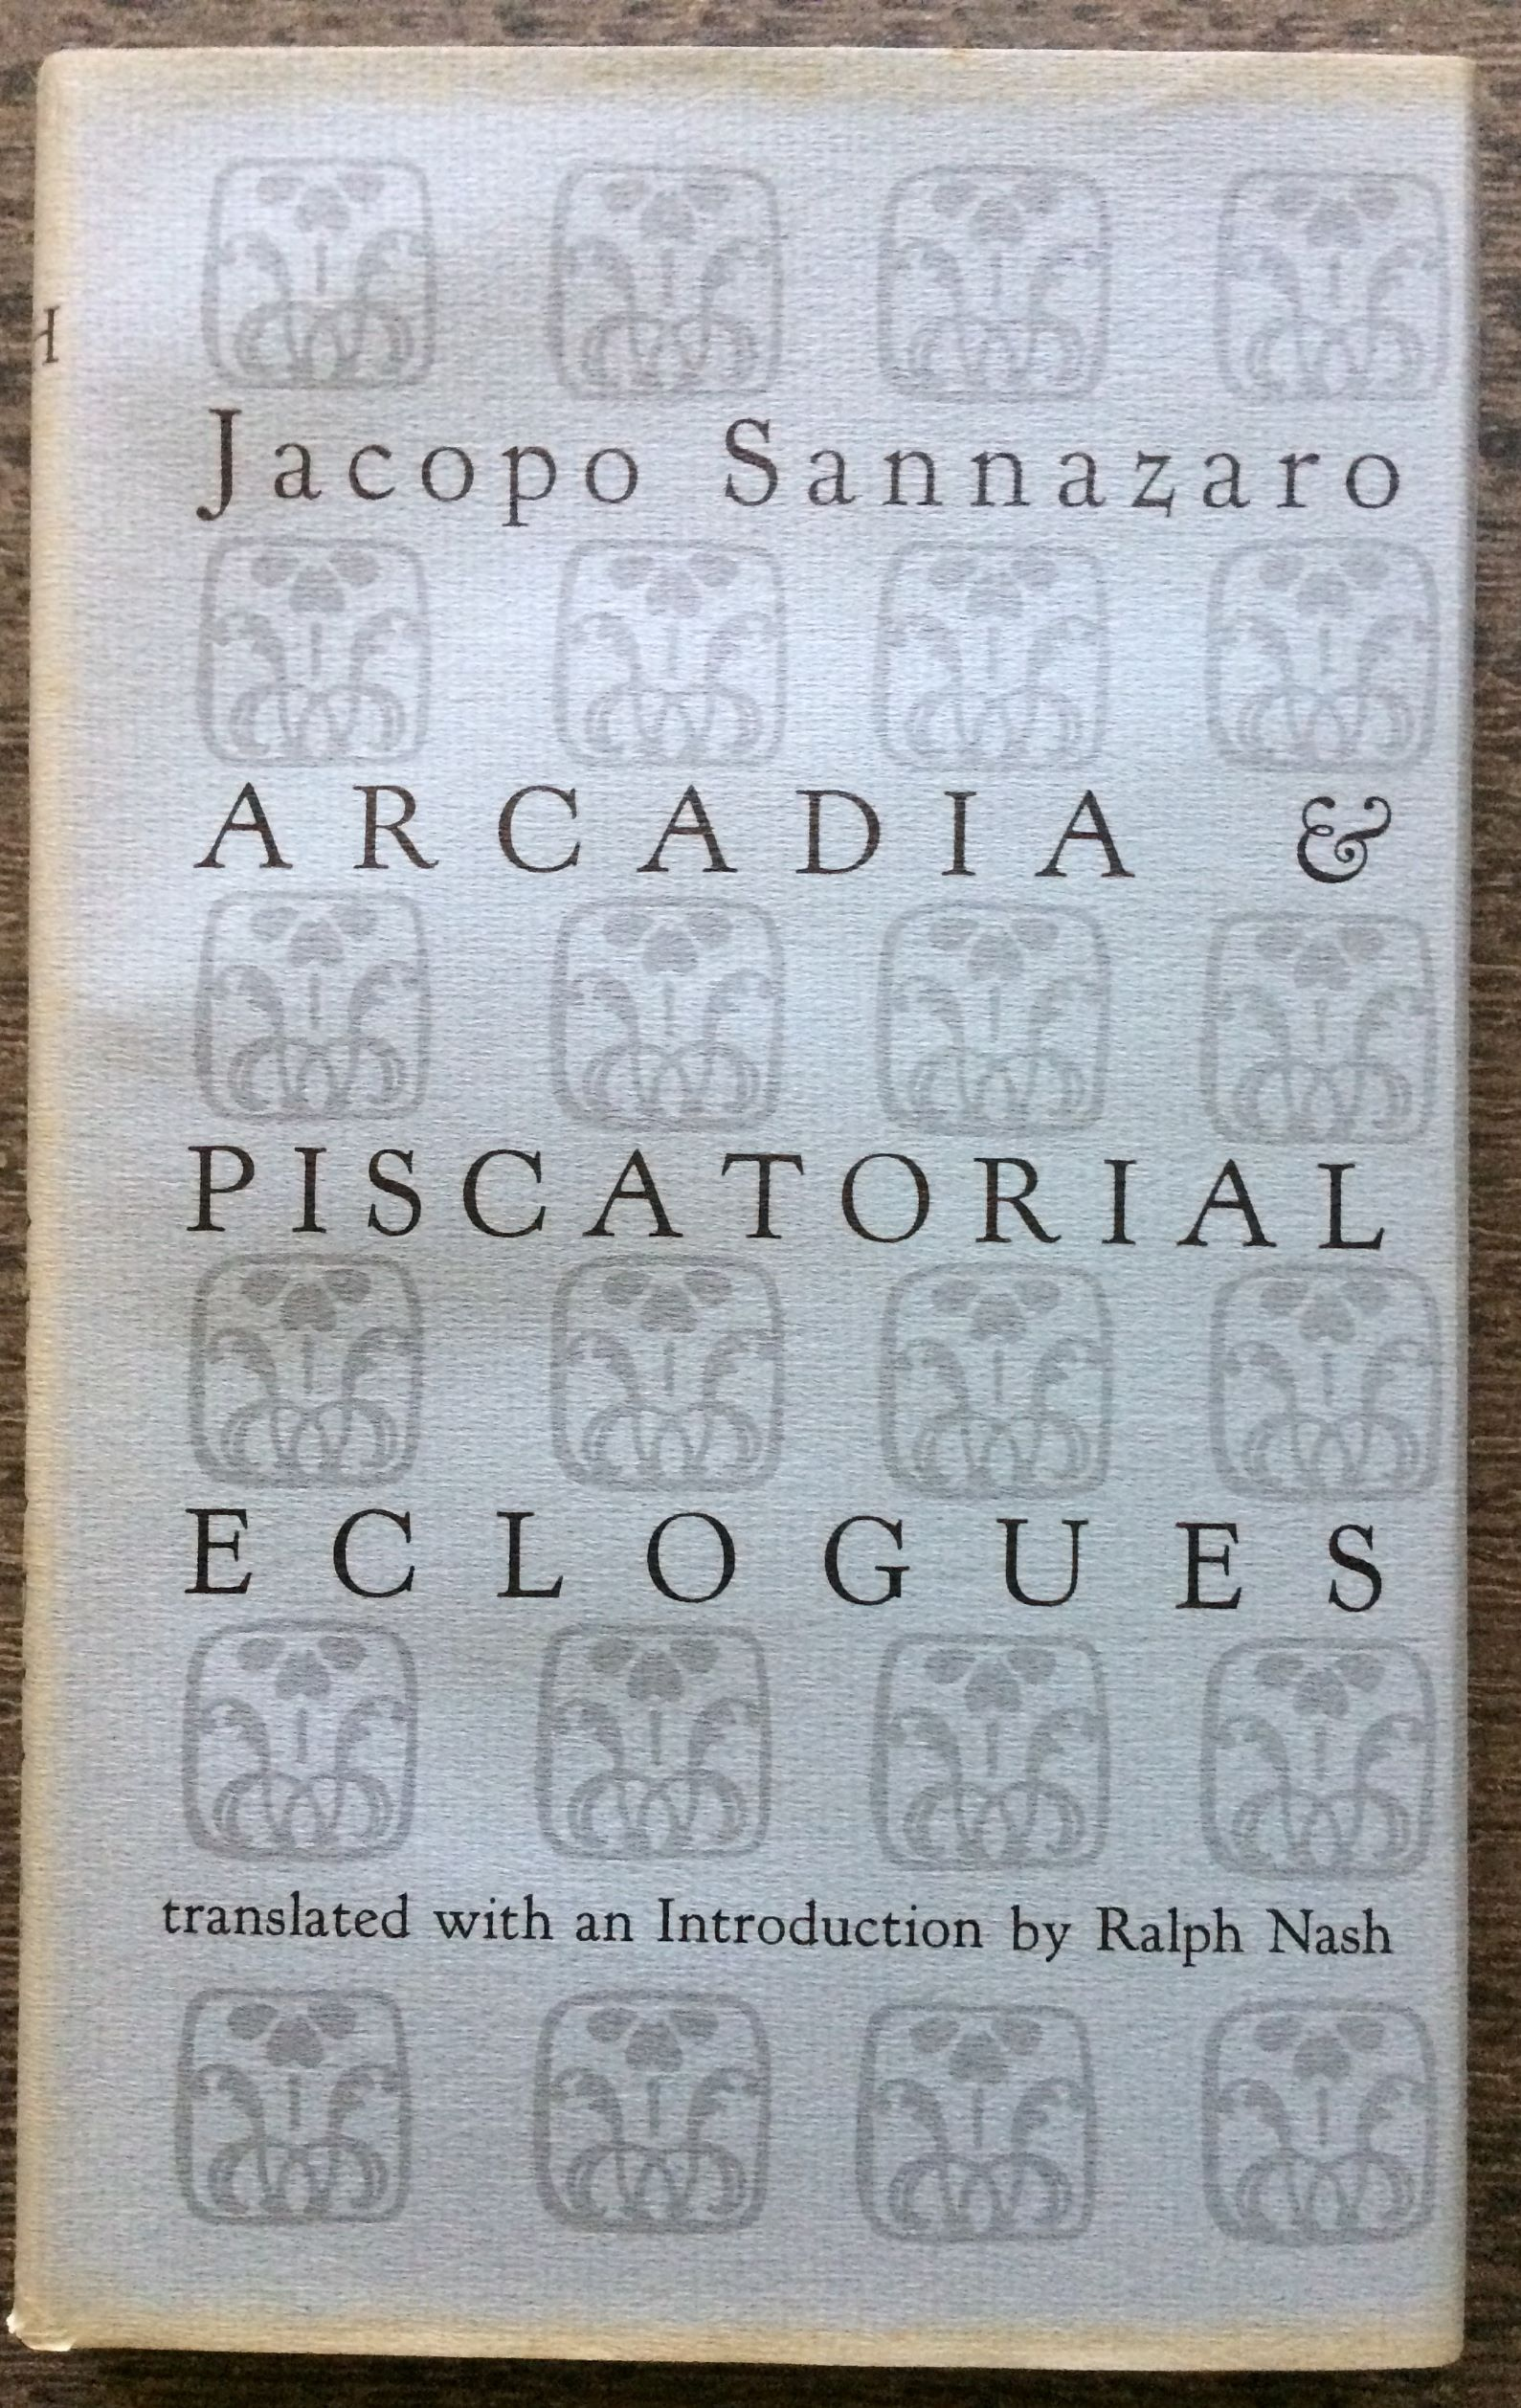 Image for Arcadia & Piscatorial Eclogues.  translated with an introduction by Ralph Nash.